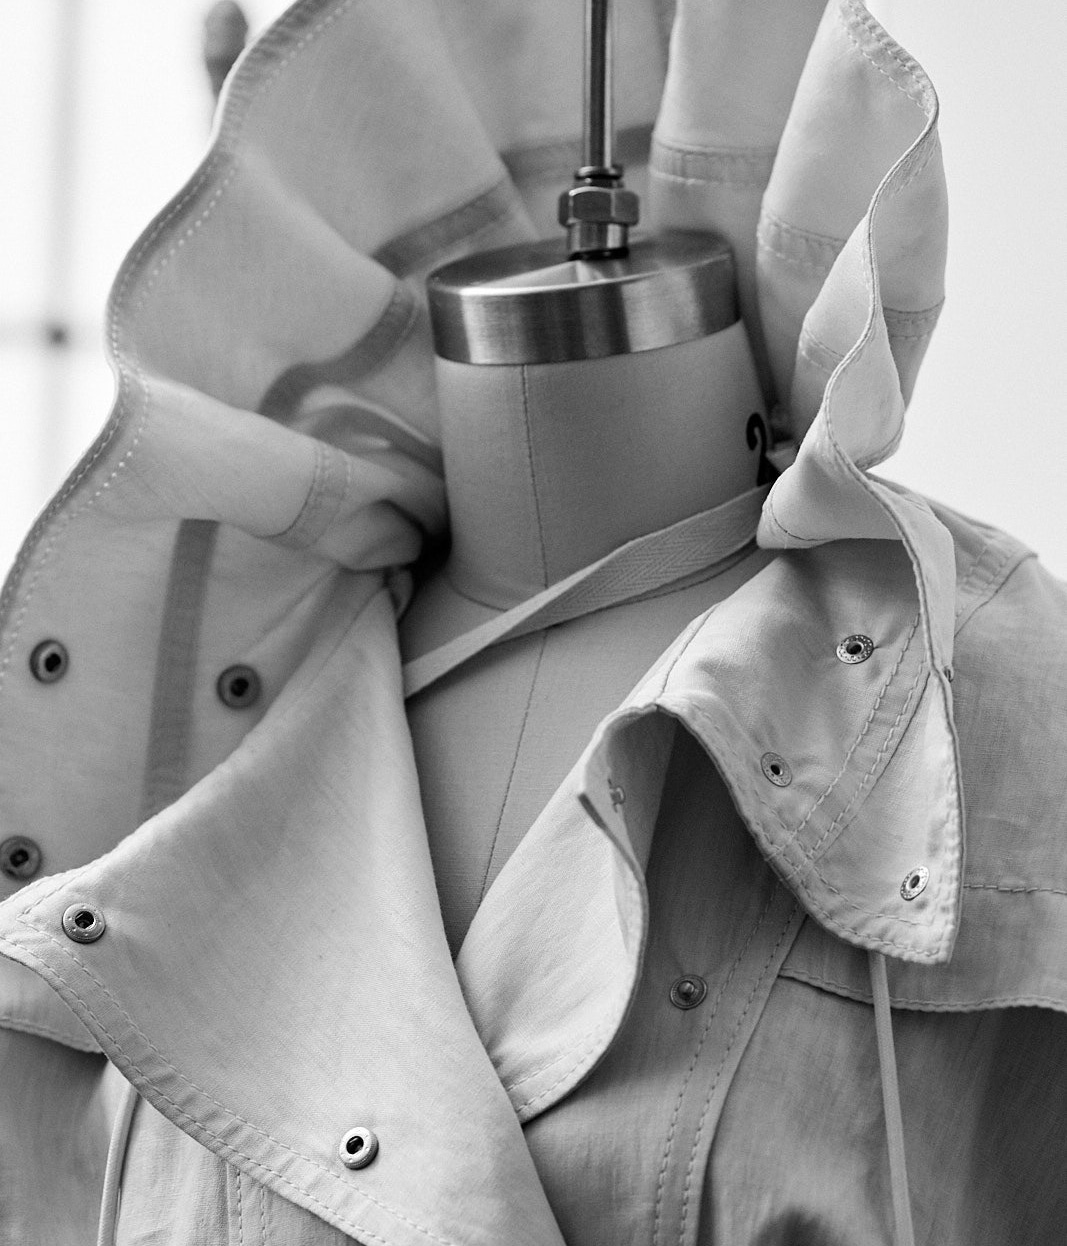 TRENCH COAT BEING ALTERED